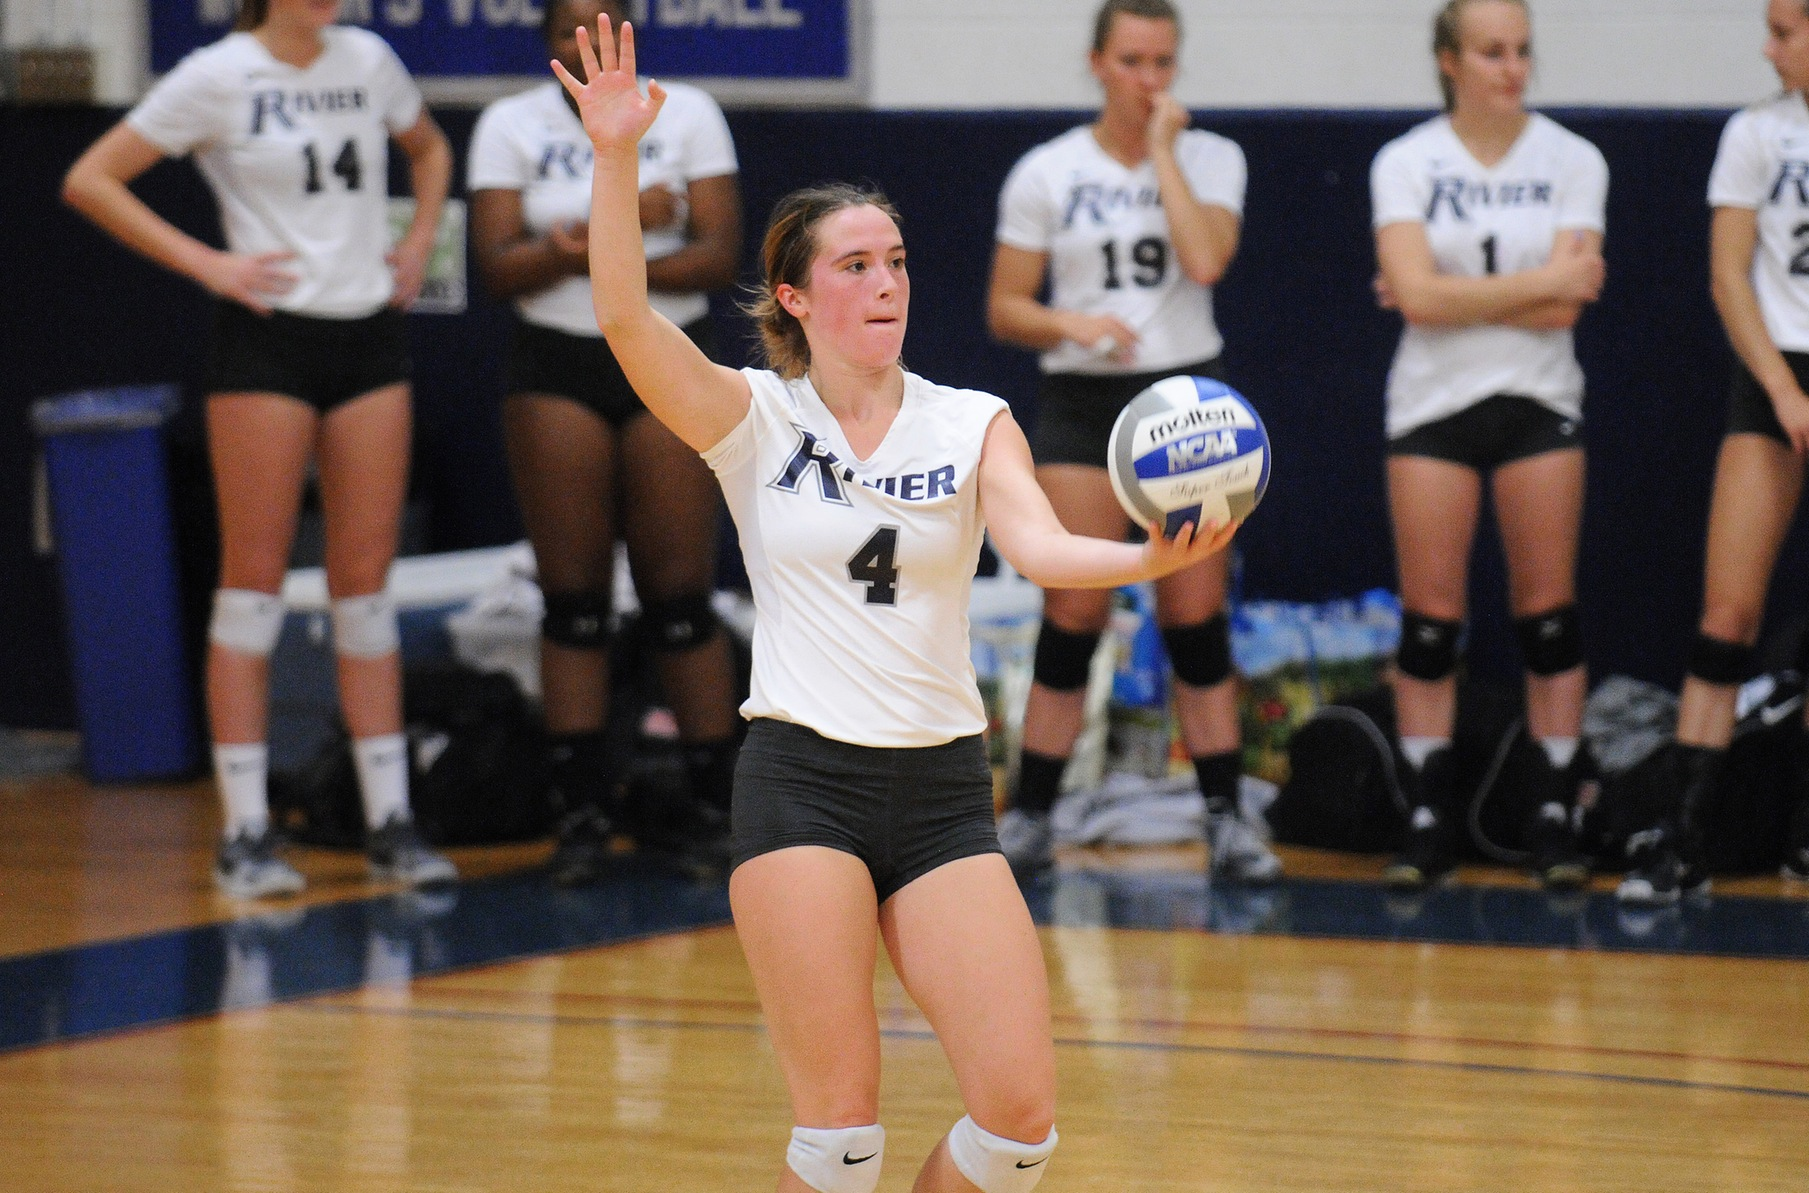 Women's Volleyball: Raiders earn first win of the season; sweep Washington College 3-0